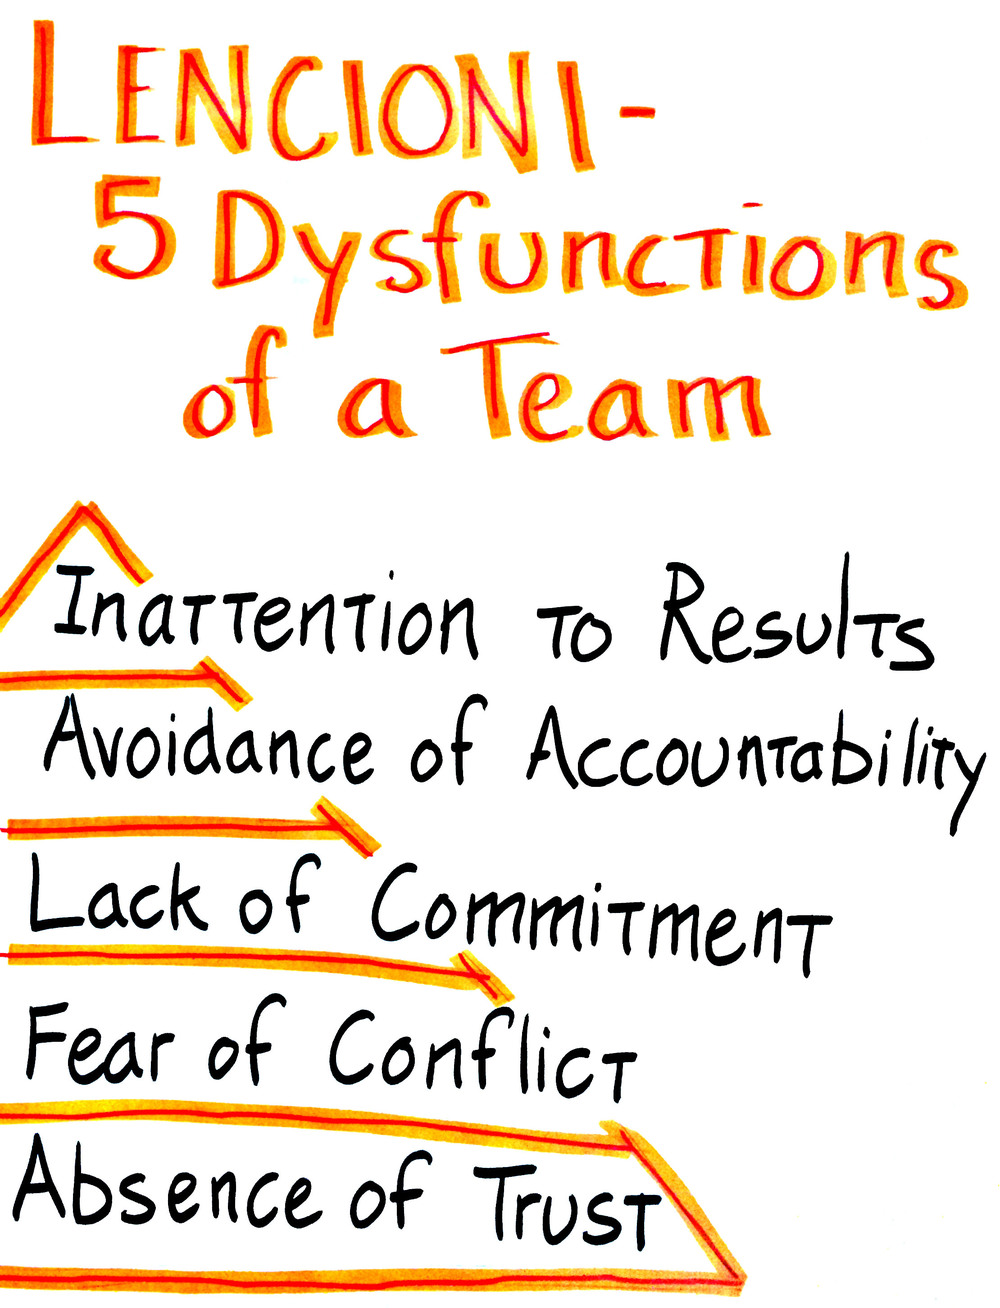 Holacracys Response To The Five Dysfunctions Of A Team